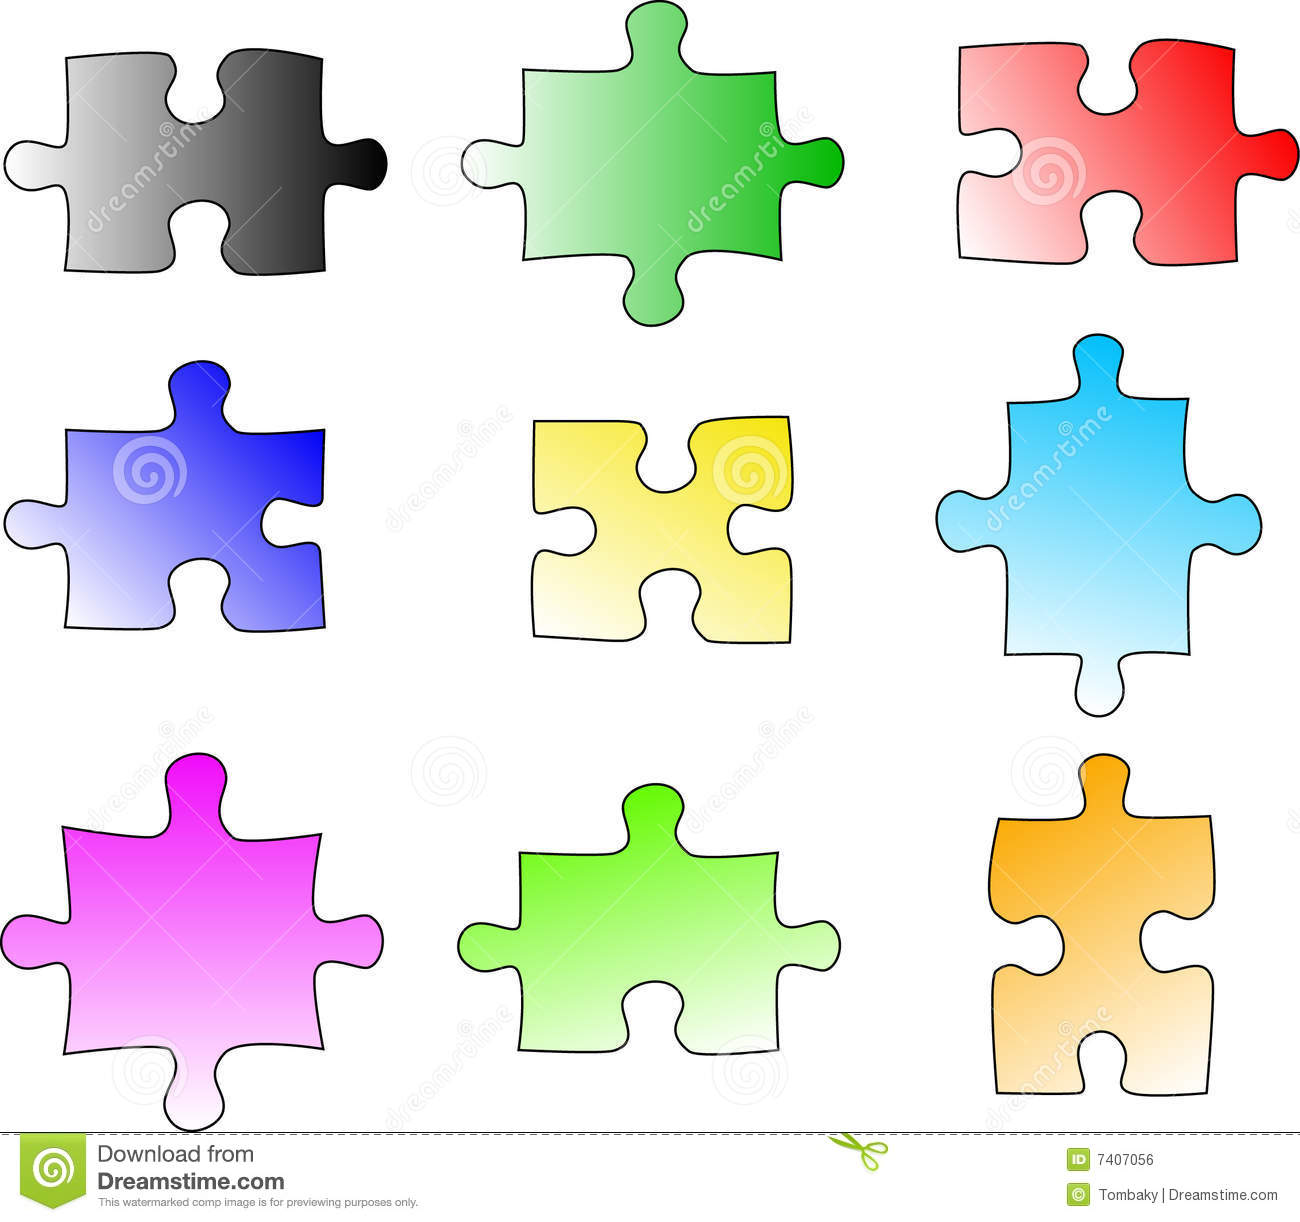 Blank Color Puzzle Pieces Royalty Free Stock Image